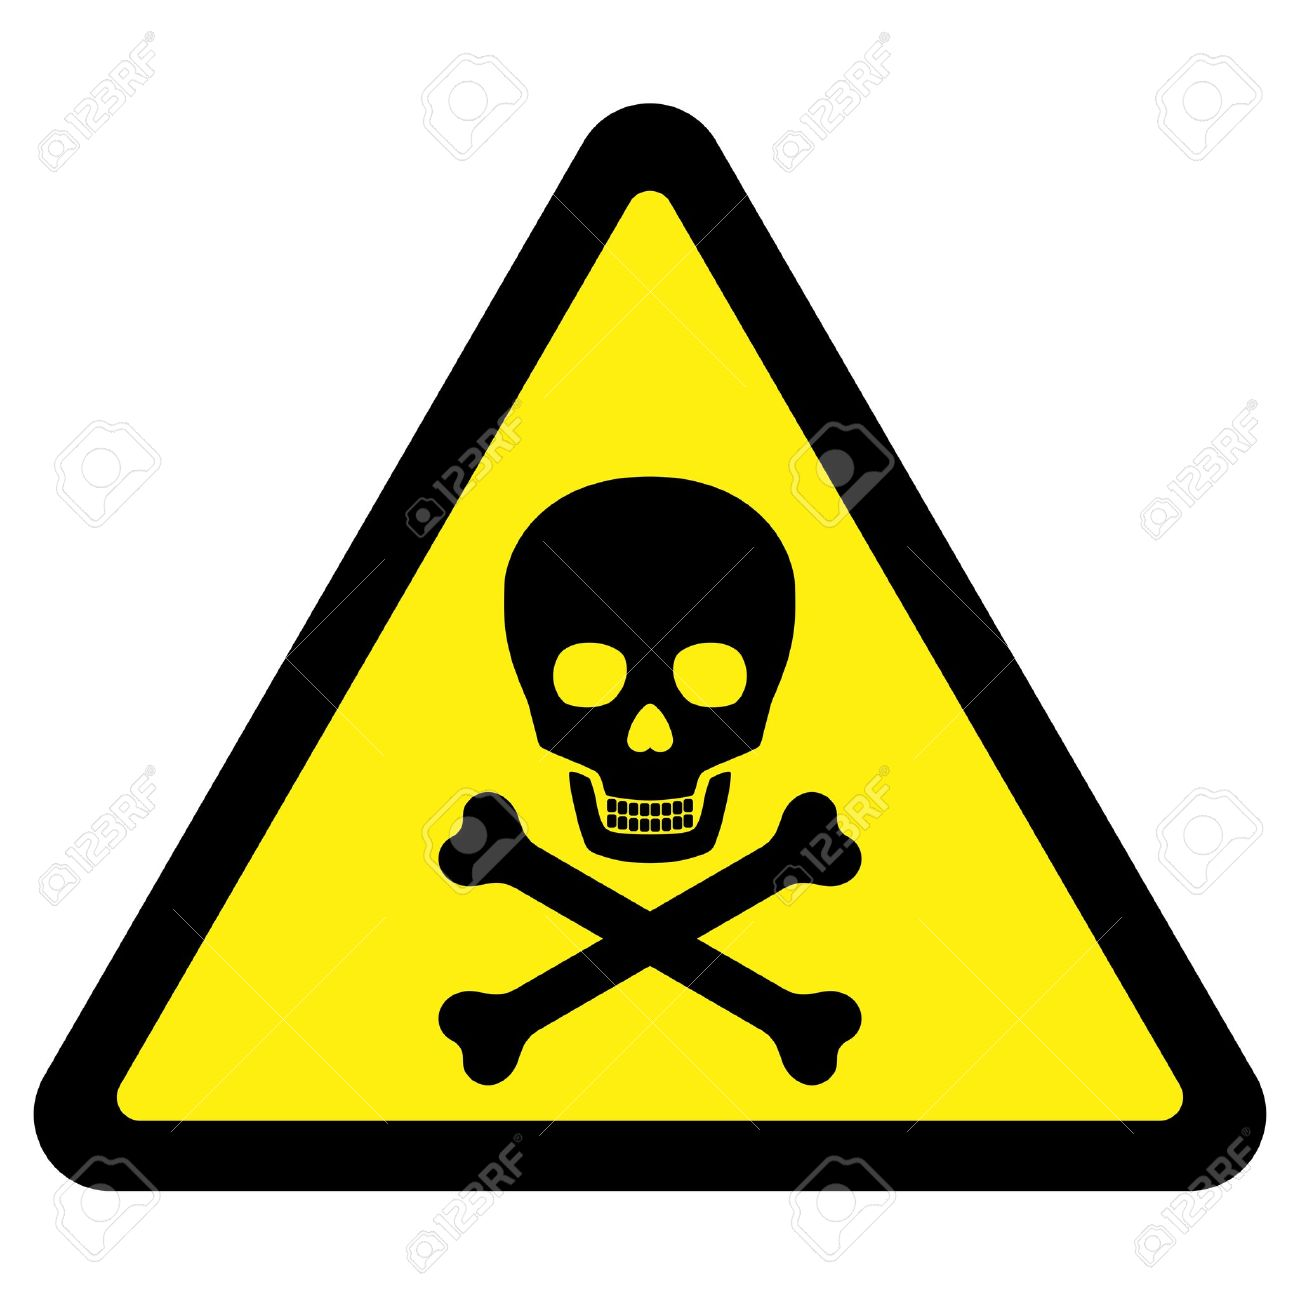 deadly danger sign royalty free cliparts vectors and stock